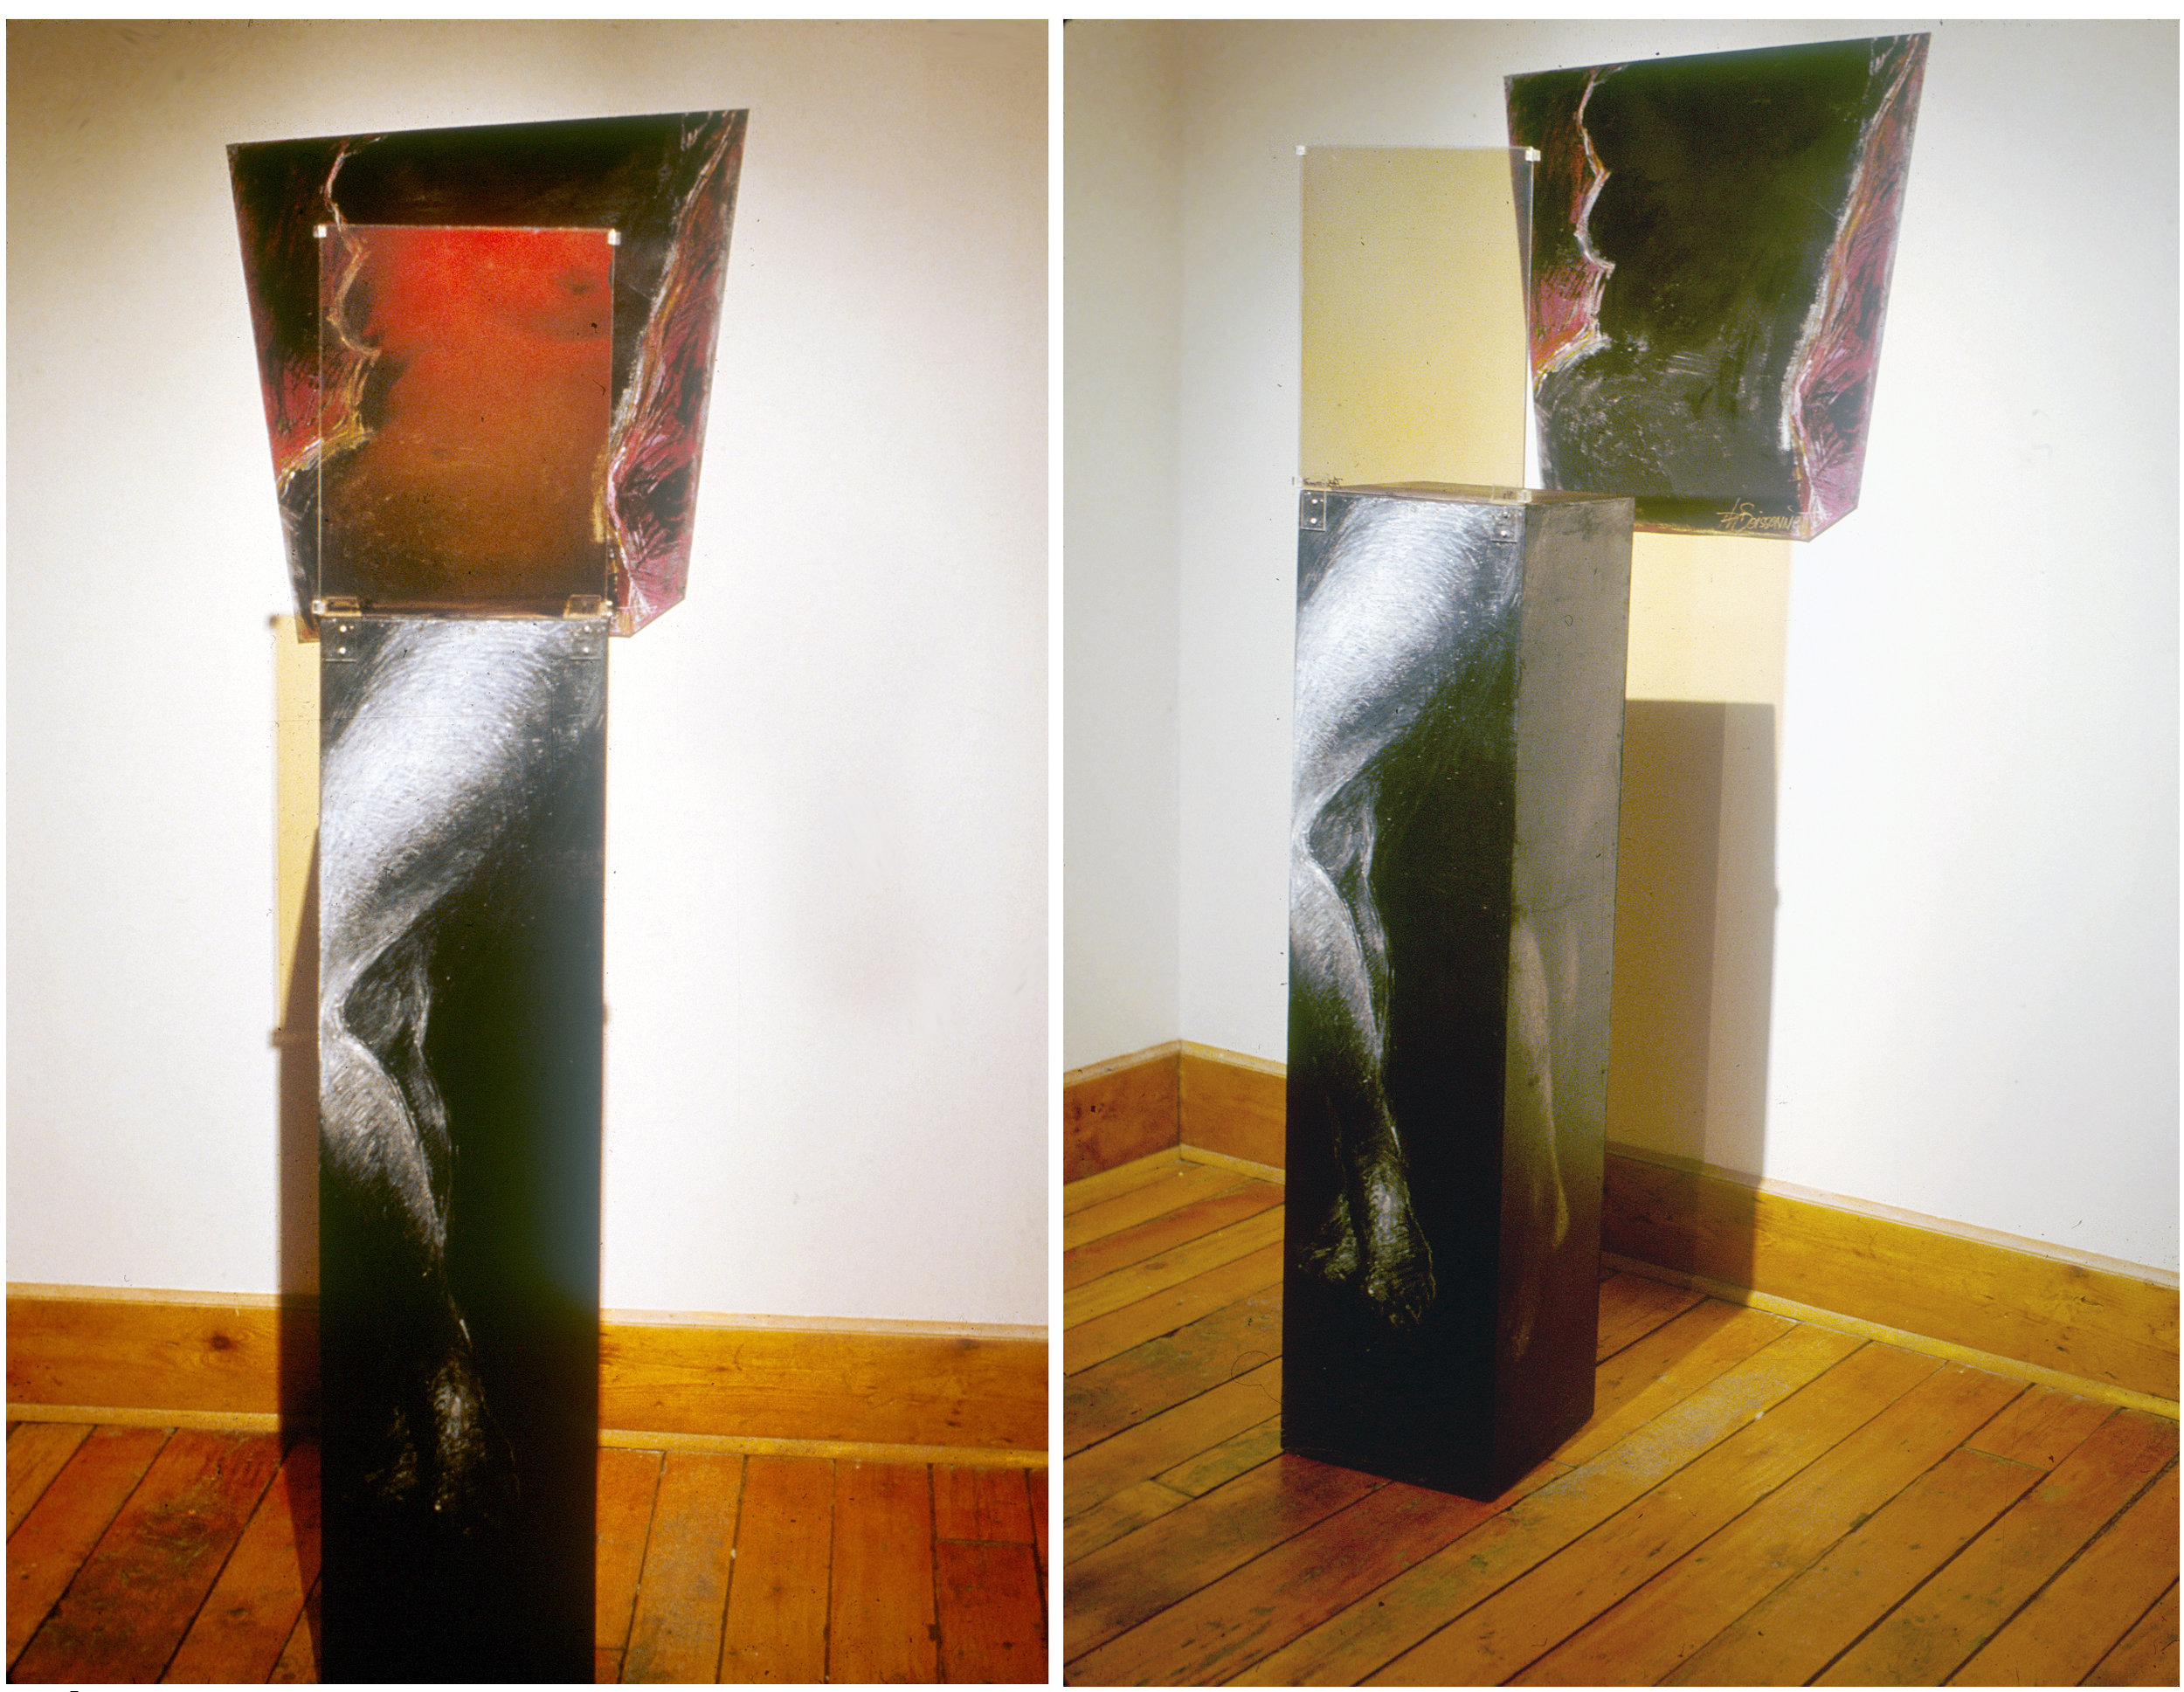 """À l'ombre des grands modèles I"", 1987 Reflection hologram (WLR) on glass and acrylic/pastels on wood and canvas 45 x 170 x 60 cm (hologram: 30 x 40 cm) Exhibition at the Centre d'art L'Imagier, Aylmer, Qc, 1988"